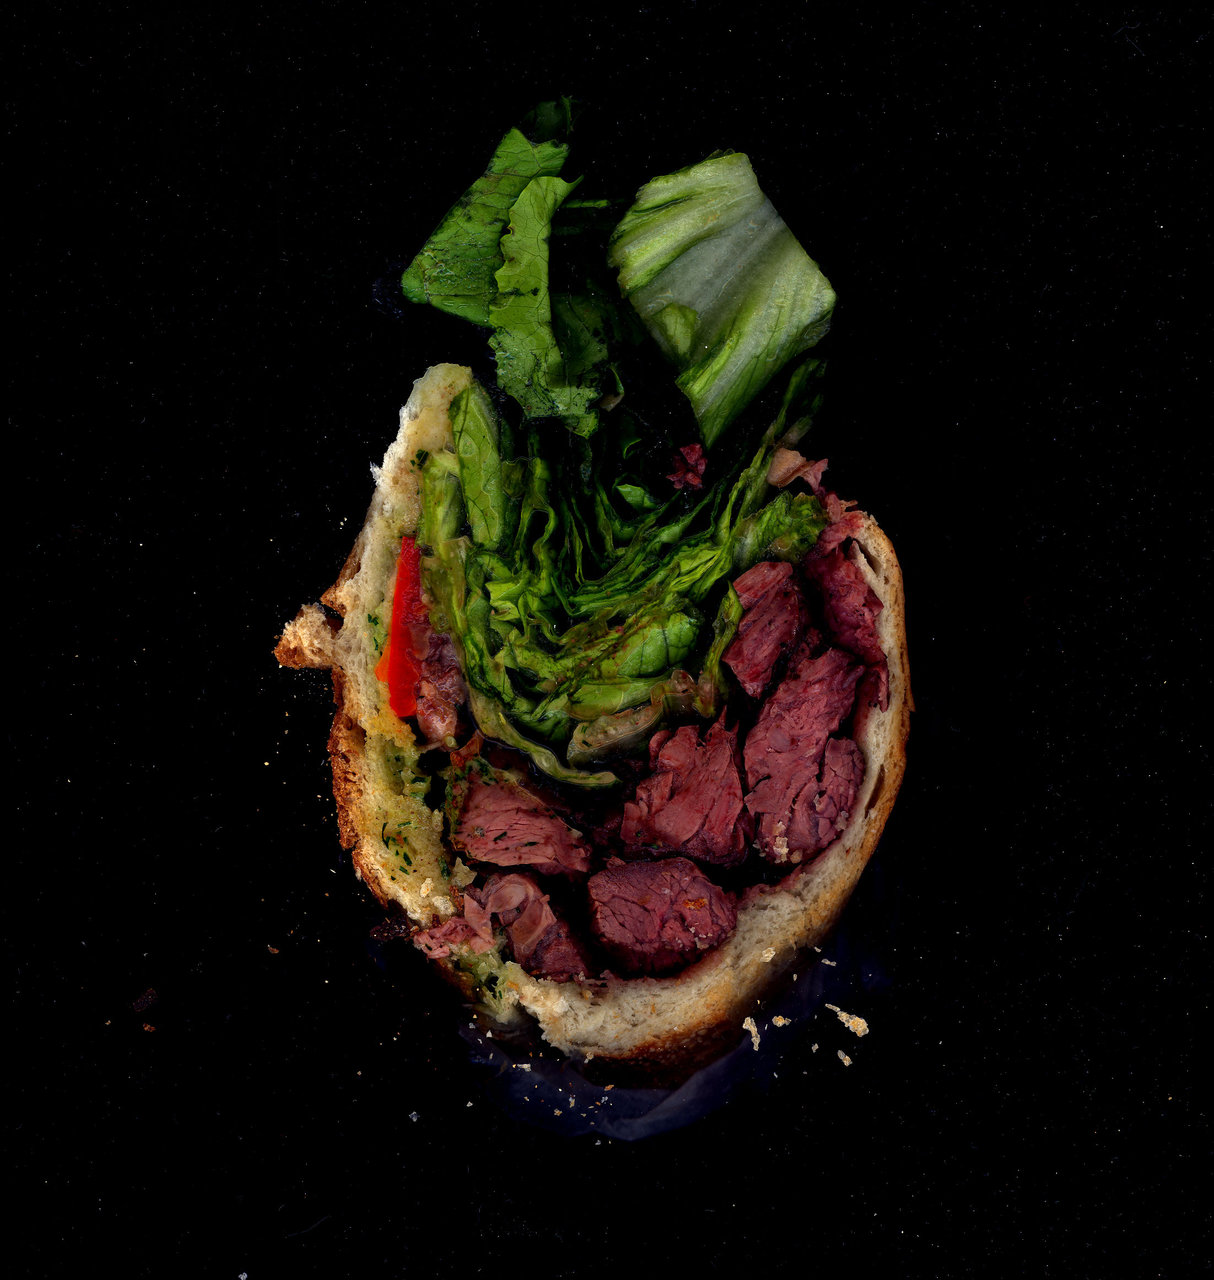 Mooncake: Steak, Peppers, Lettuce, Herbal Mayo on a baguette